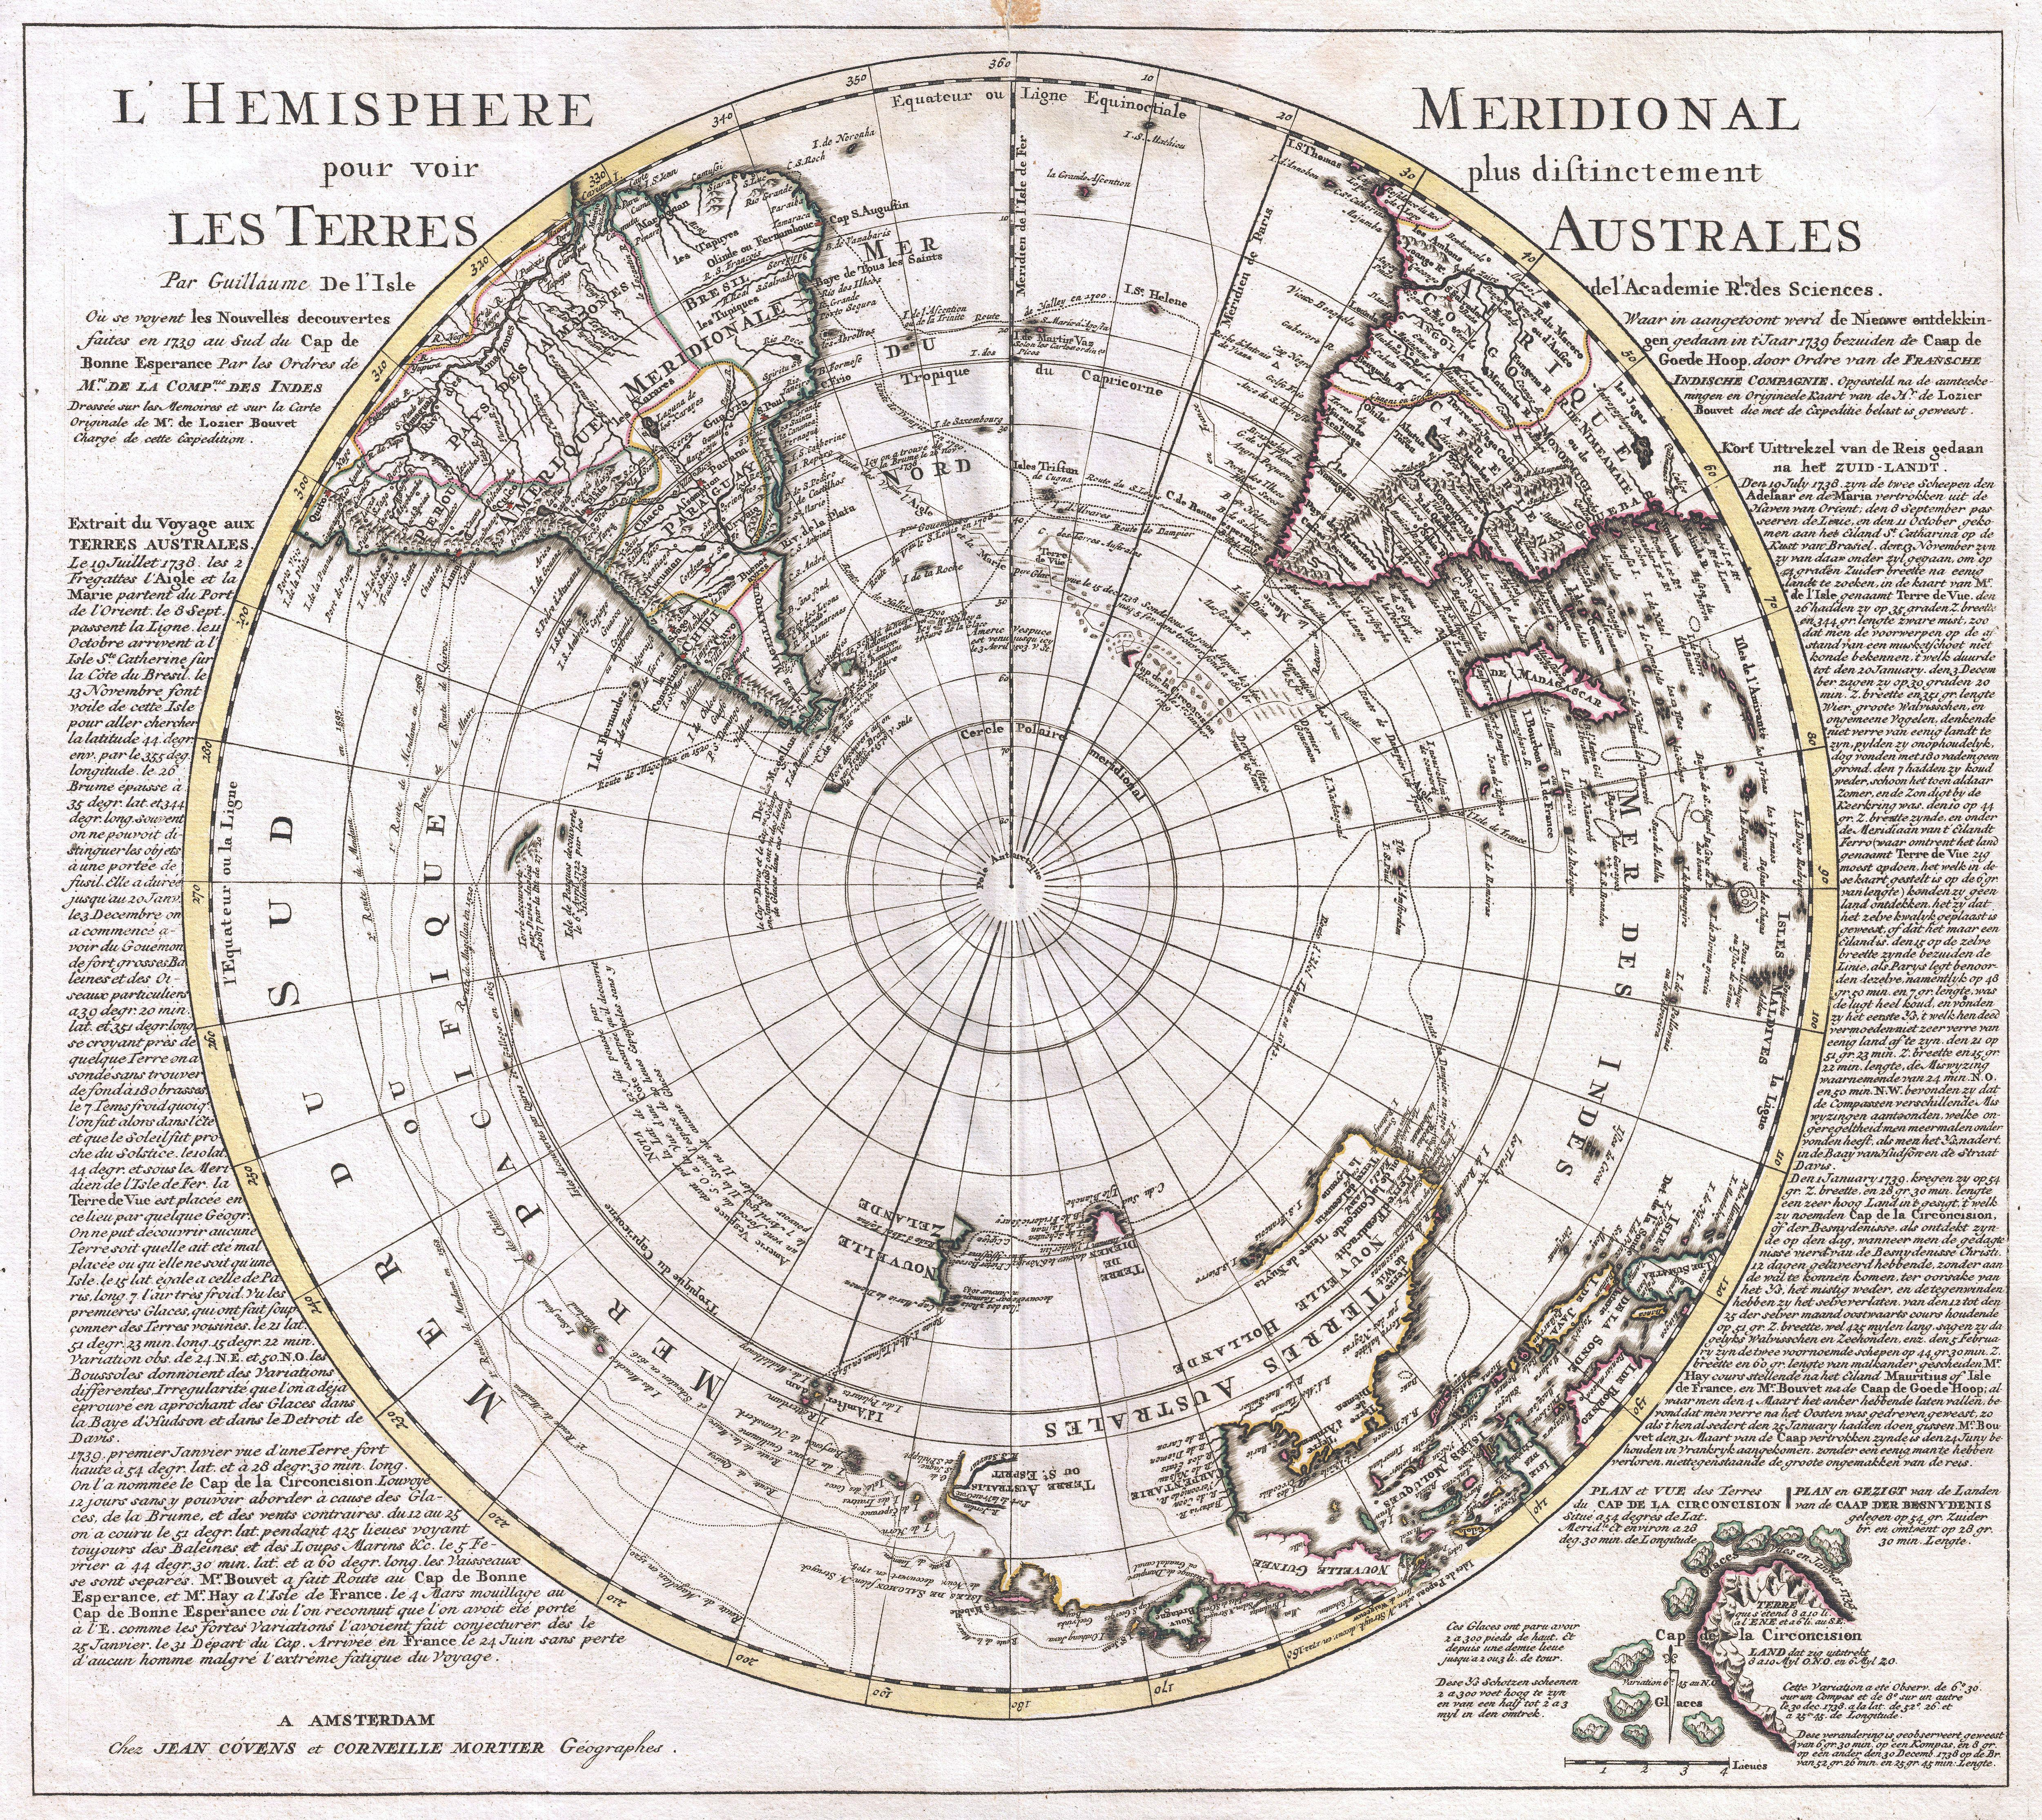 Map Of South Pole File:1741 Covens and Mortier Map of the Southern Hemisphere